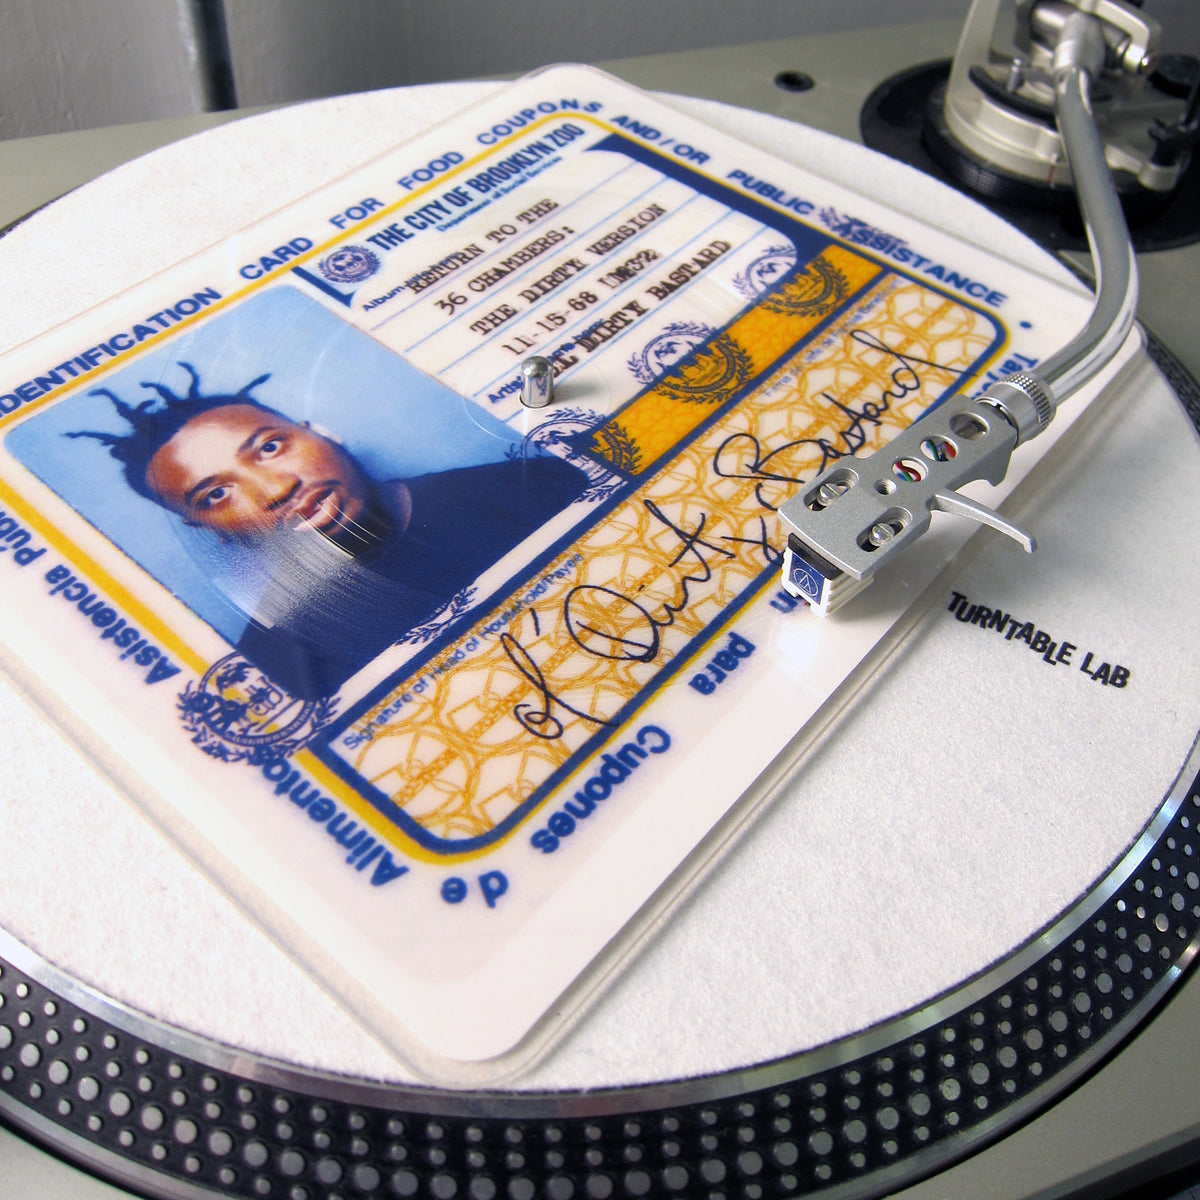 Ol' Dirty Bastard: Brooklyn Zoo / Shimmy Shimmy Ya (Pic Disc) Vinyl 7""